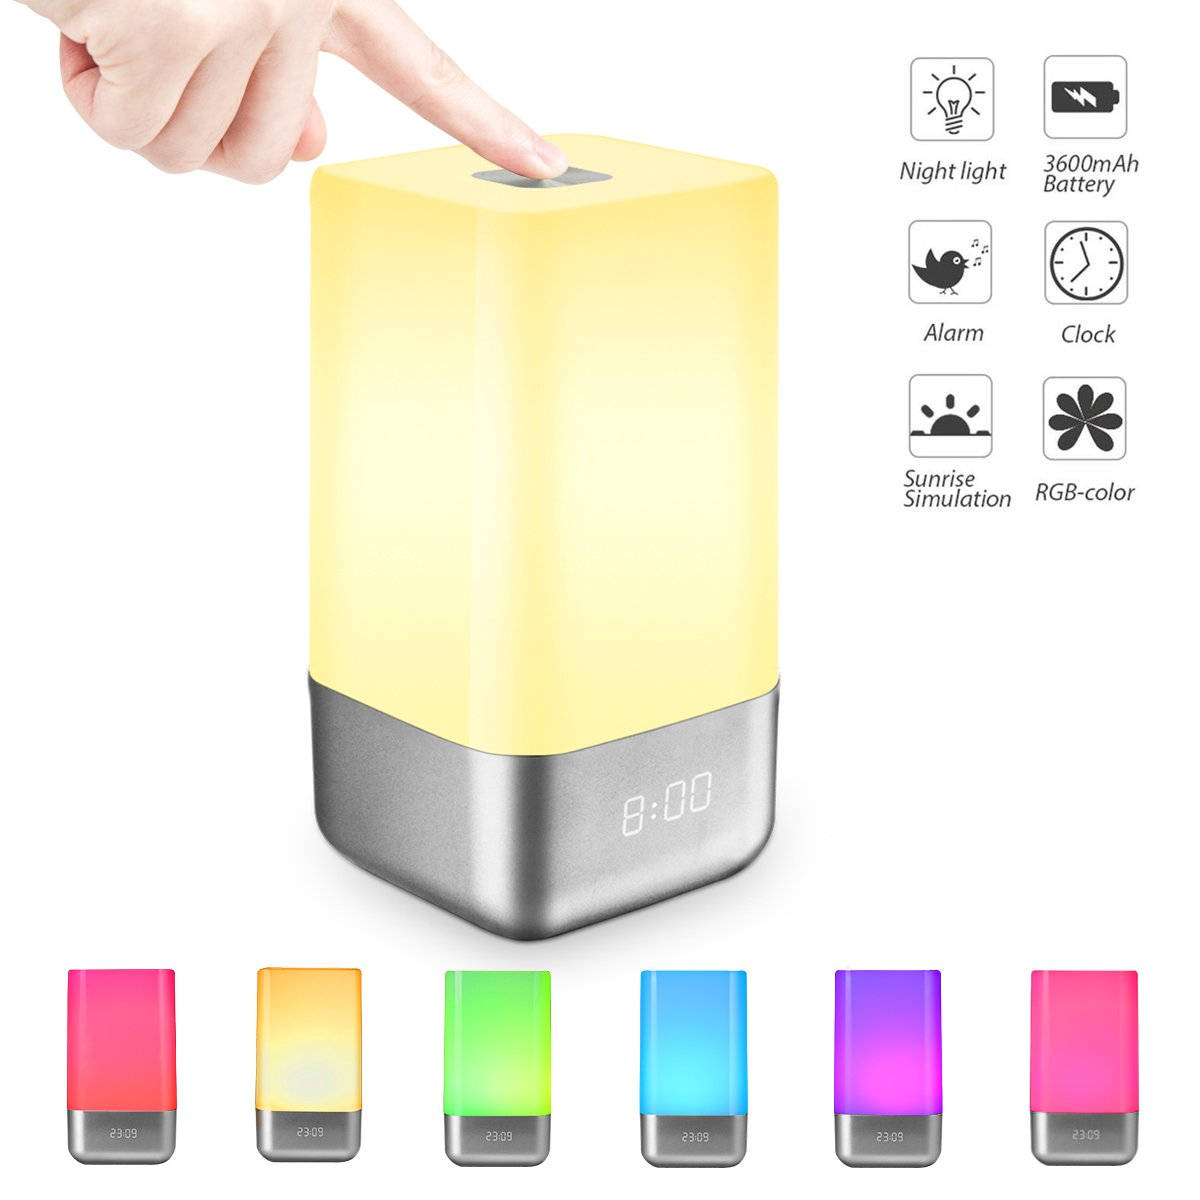 Fypo LED Despertador Lámpara RGB Luz Alarma Digital Wake Up Light Simulación